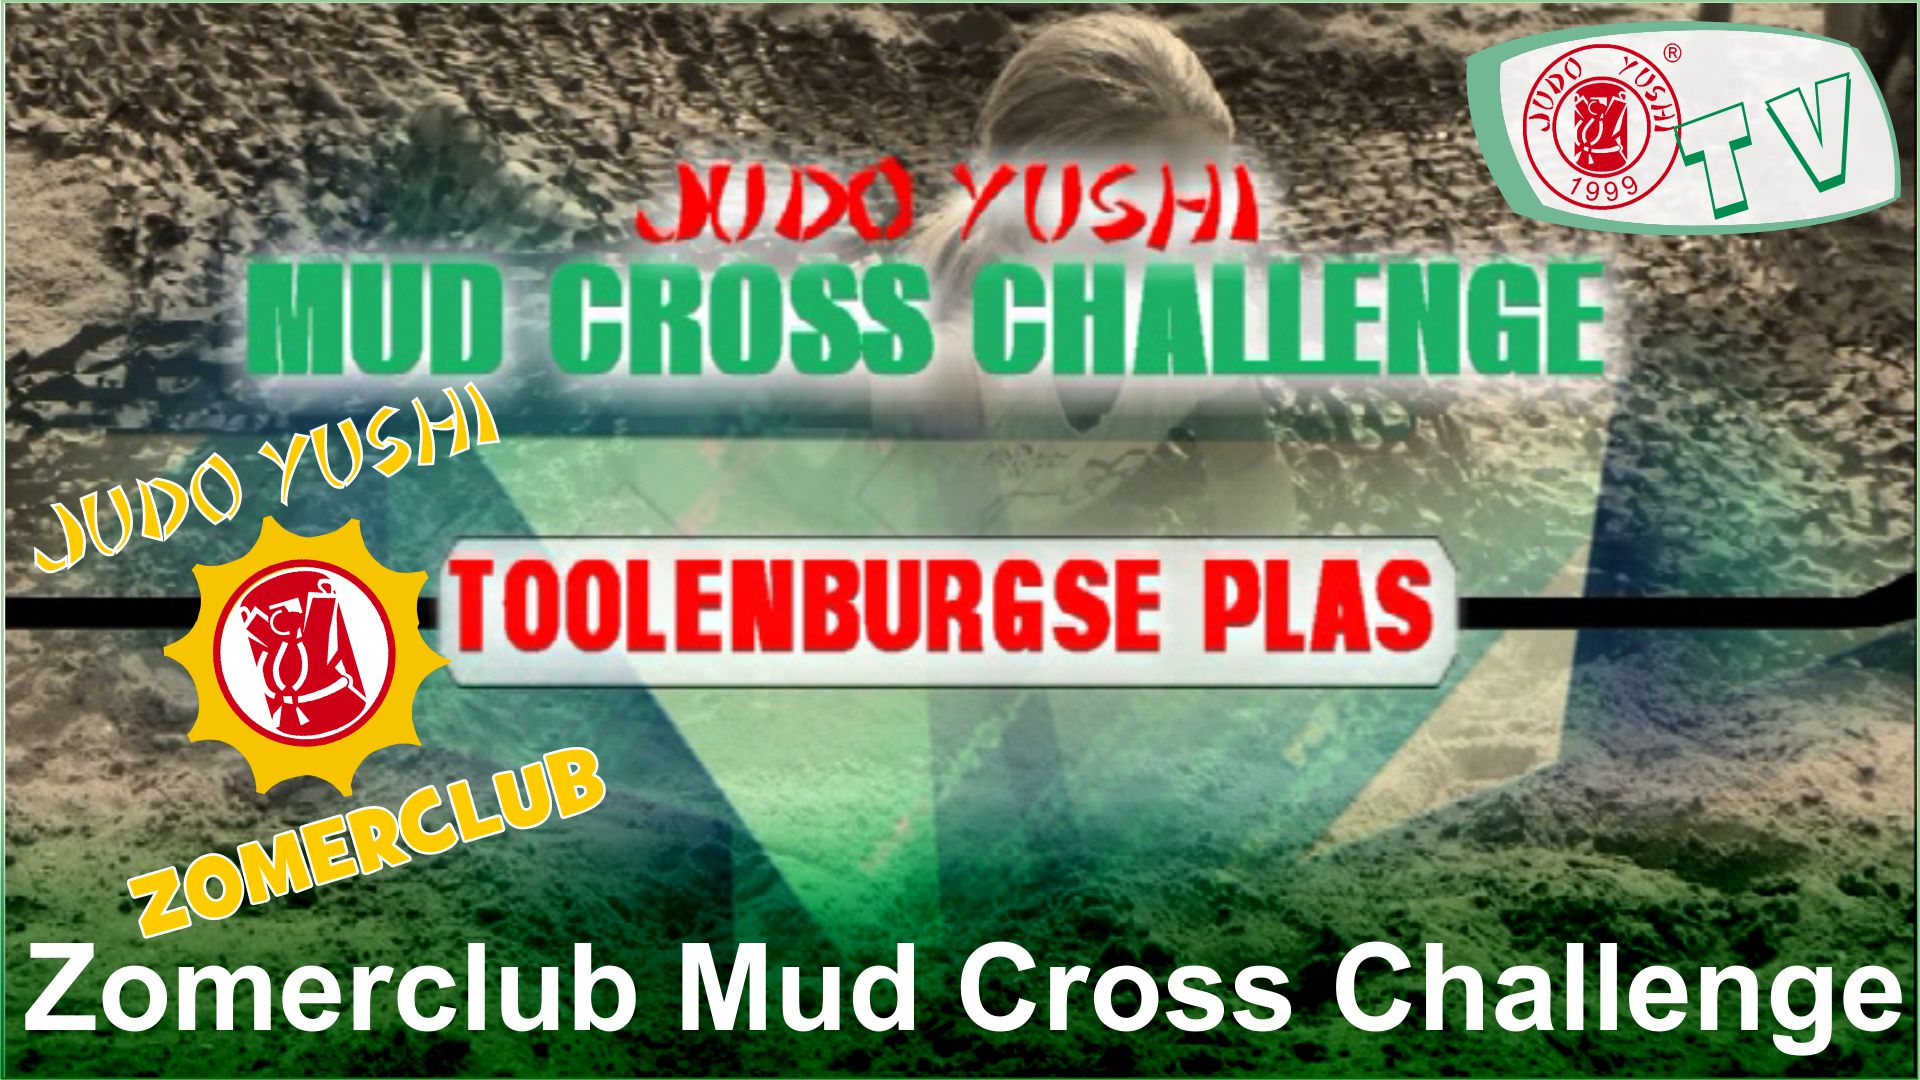 ZOMERCLUB MUD CROSS CHALLENGE